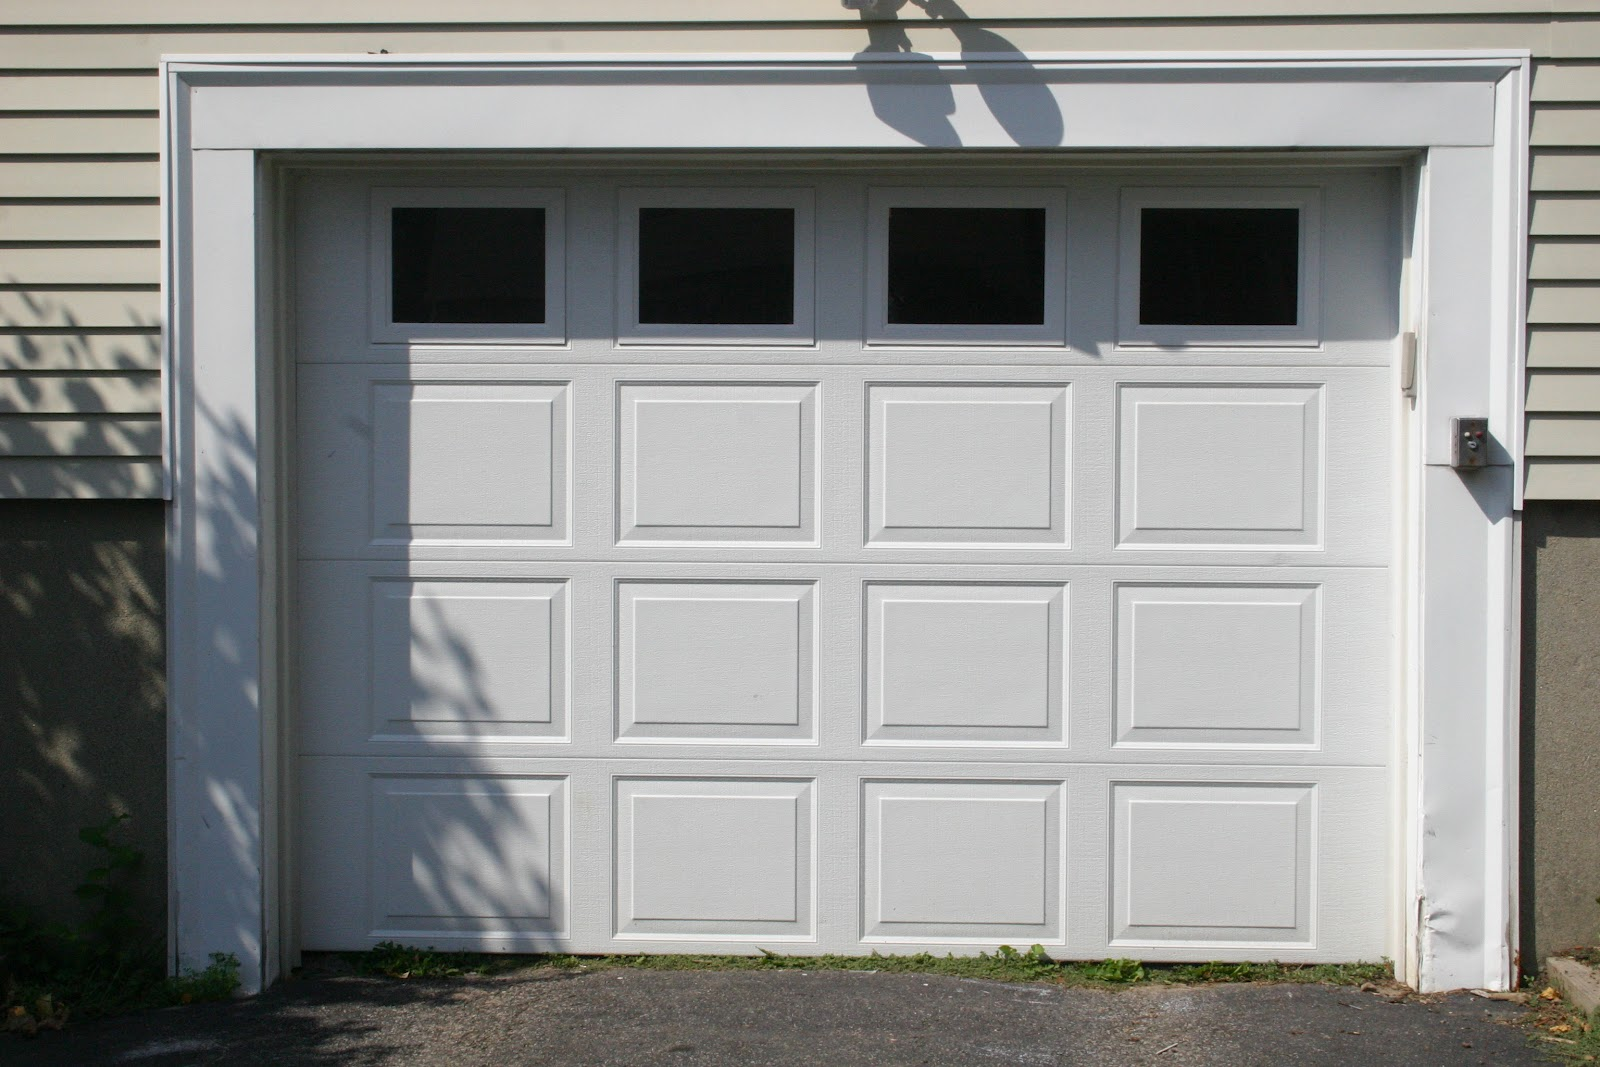 Garage door archives page 2 of 4 perfect solutions for Garage doors